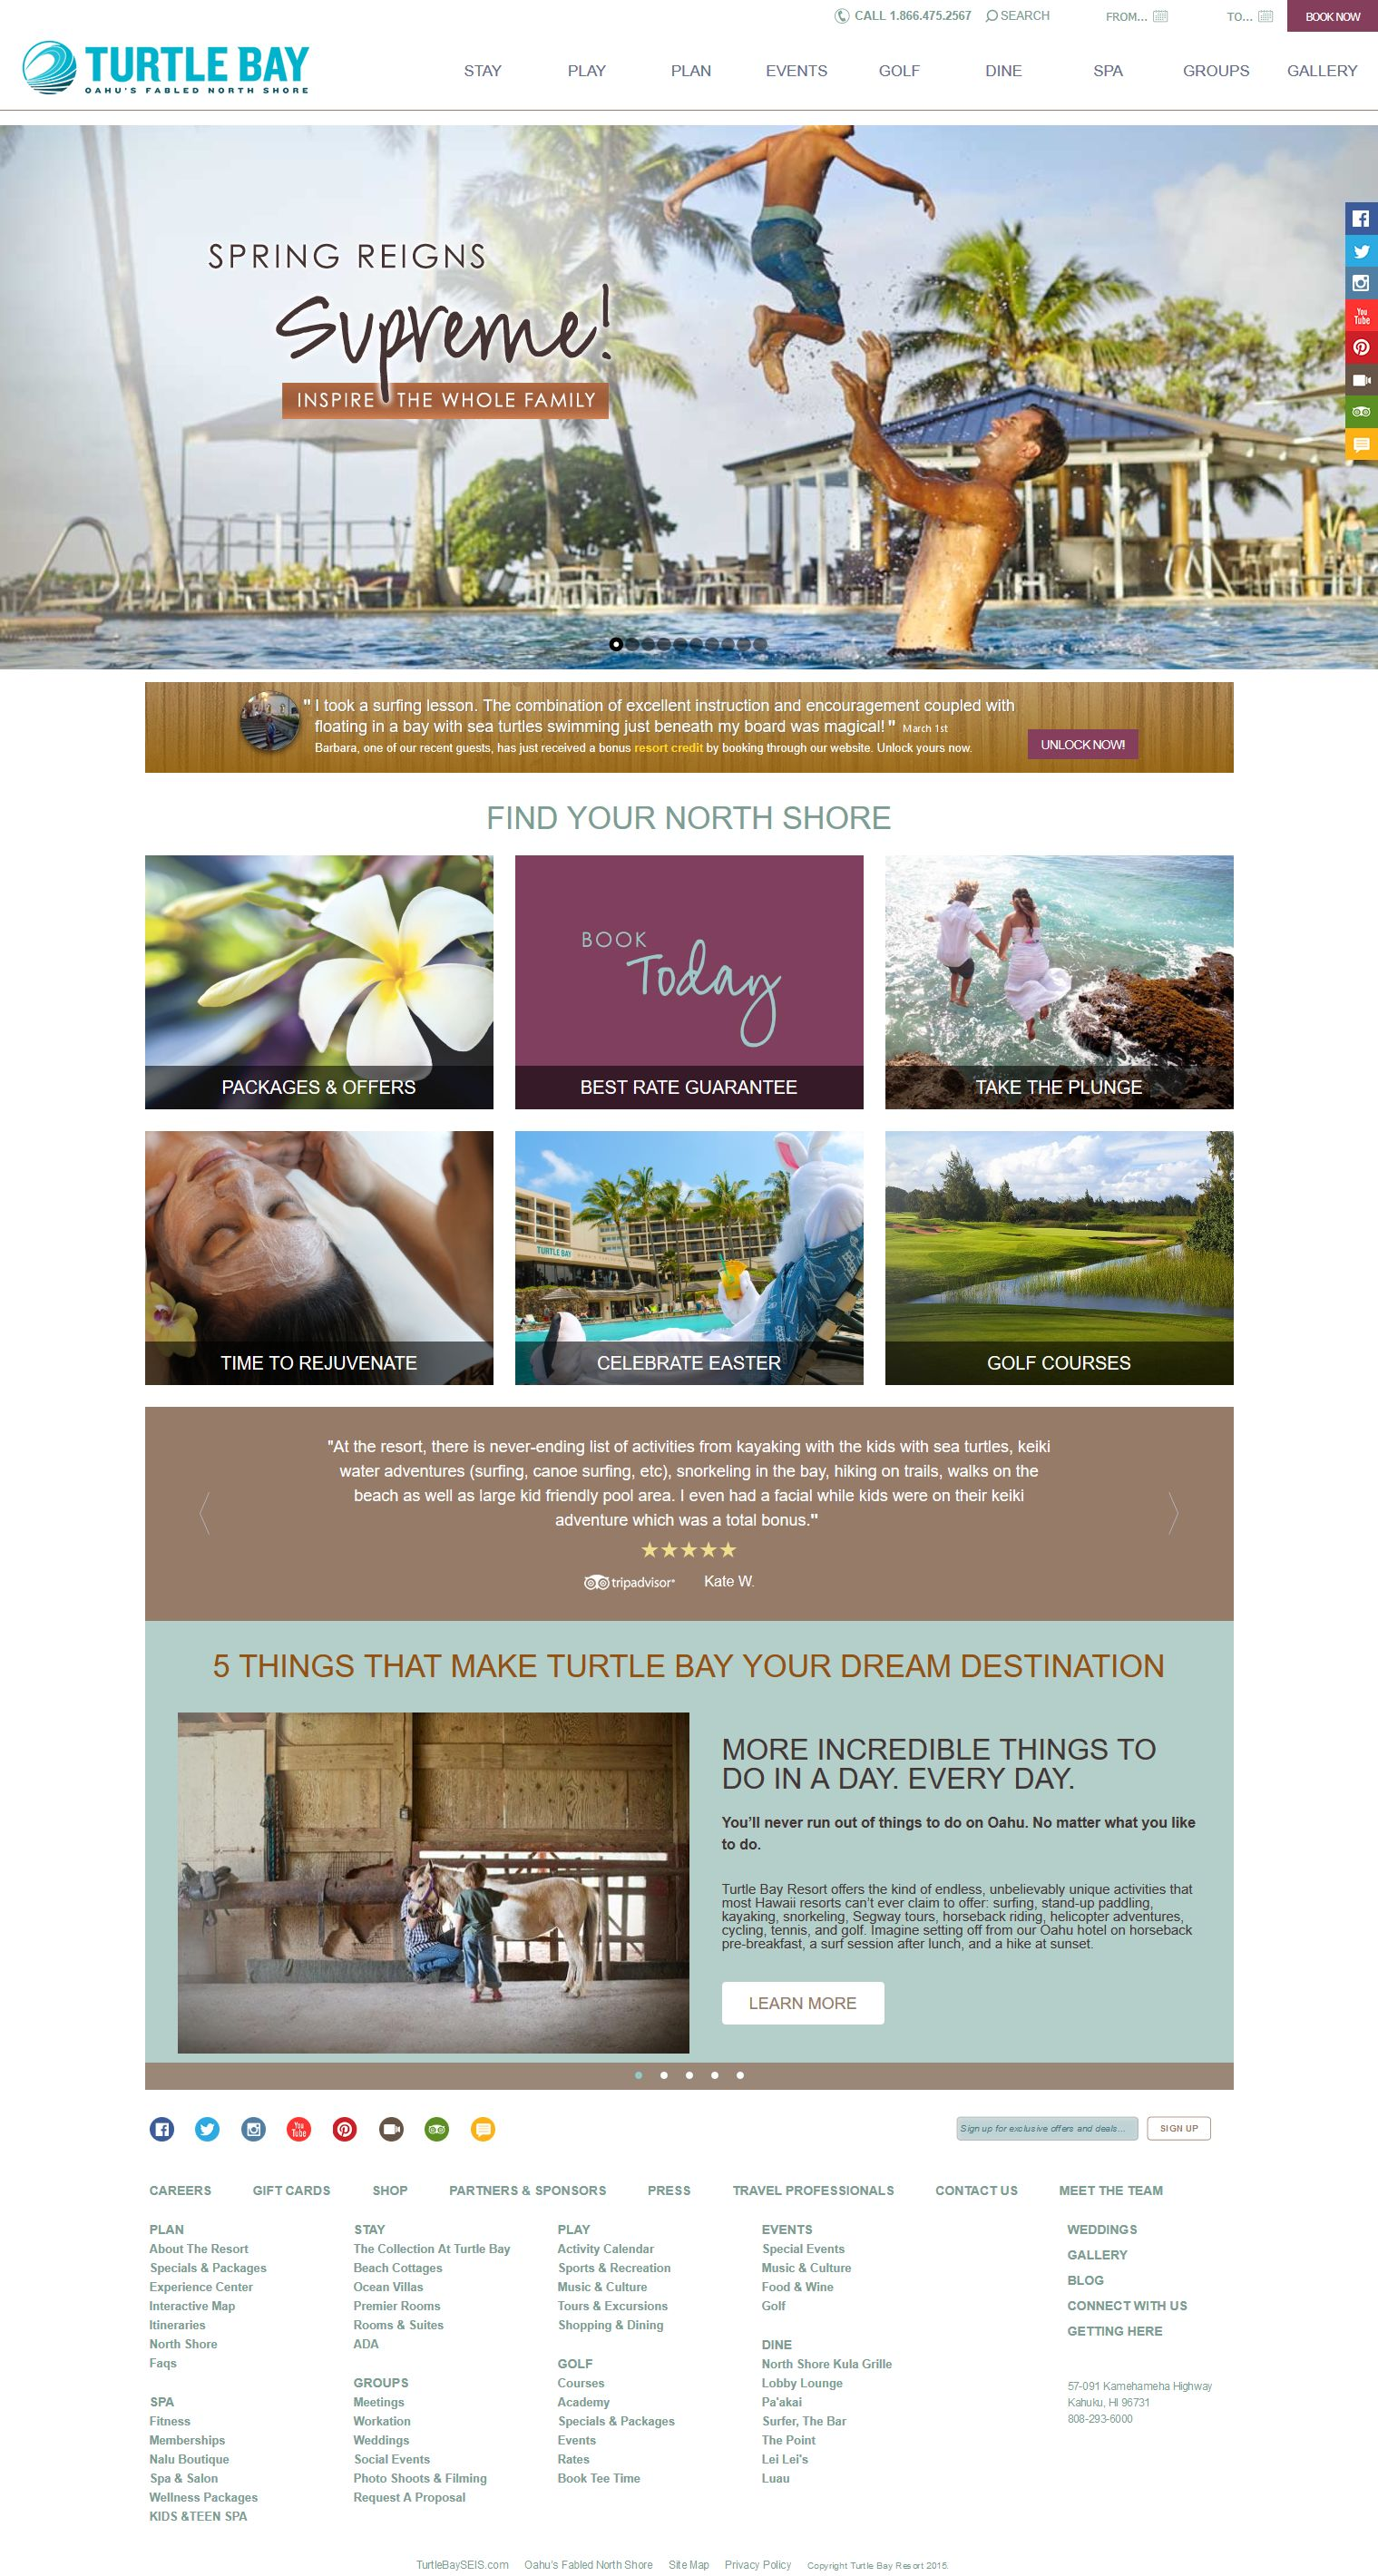 Turtle Bay Resort - running Drupal and Google Analytics